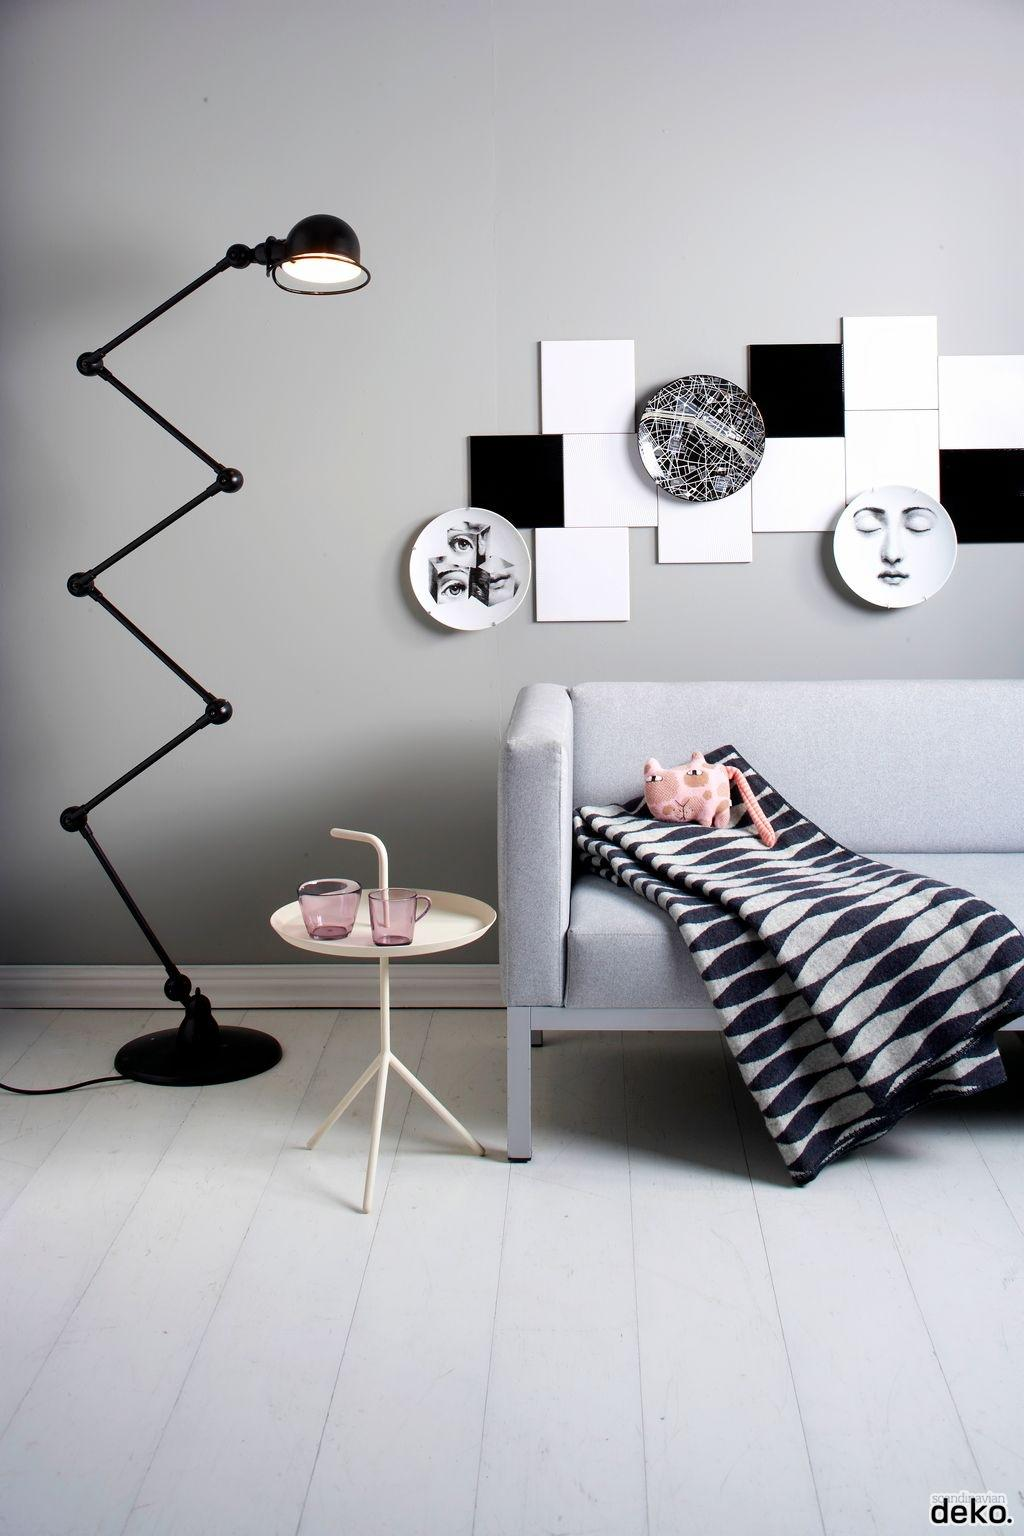 Ideas | Scandinavian Deko.